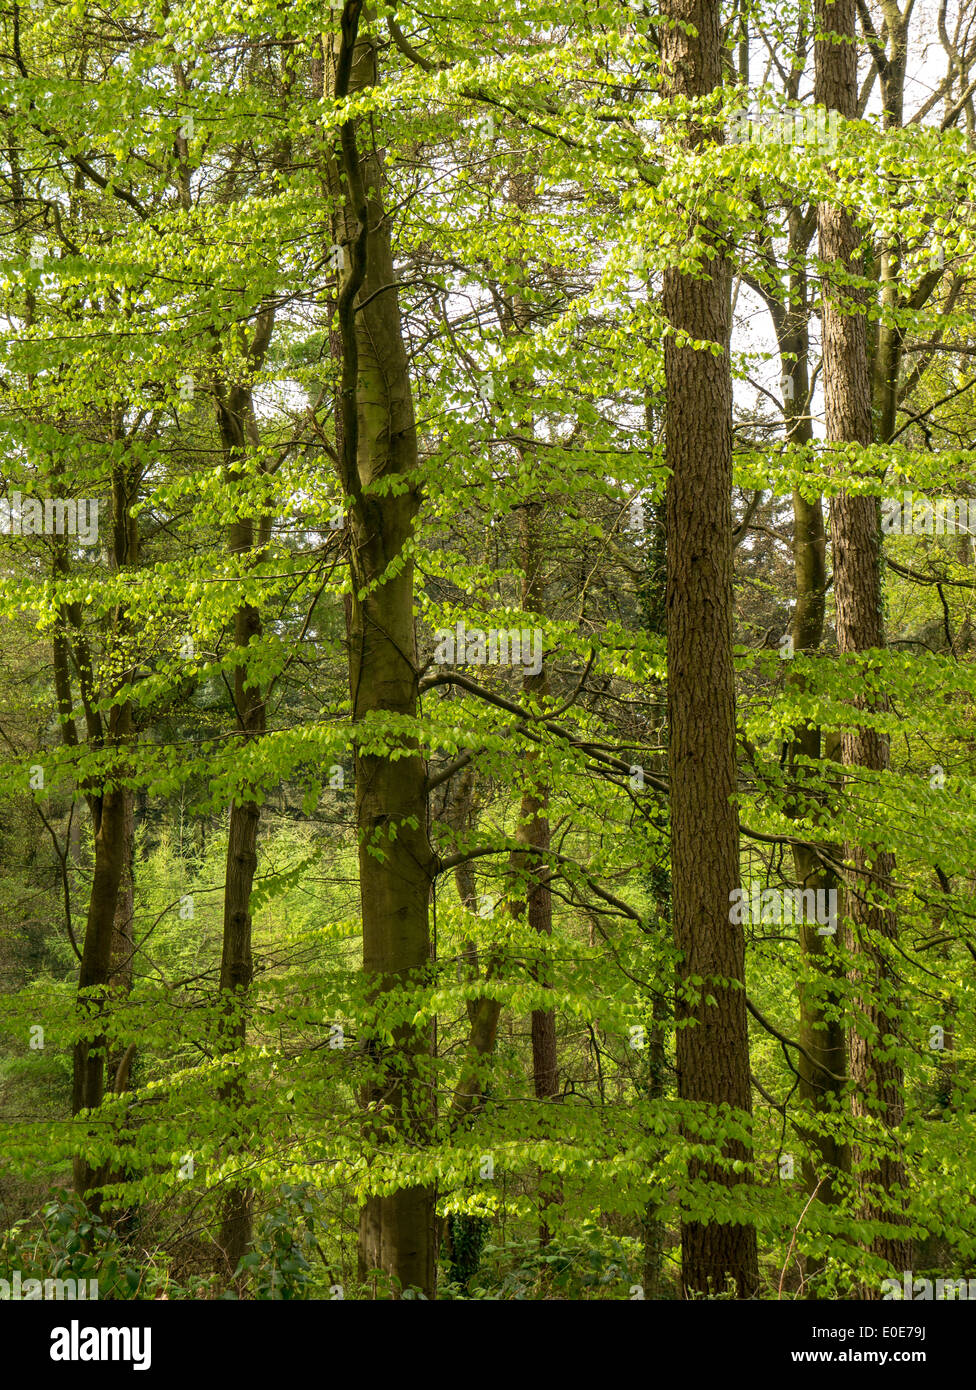 Spring growth in woodland in the Forest of Dean, near Coleford, UK - Stock Image